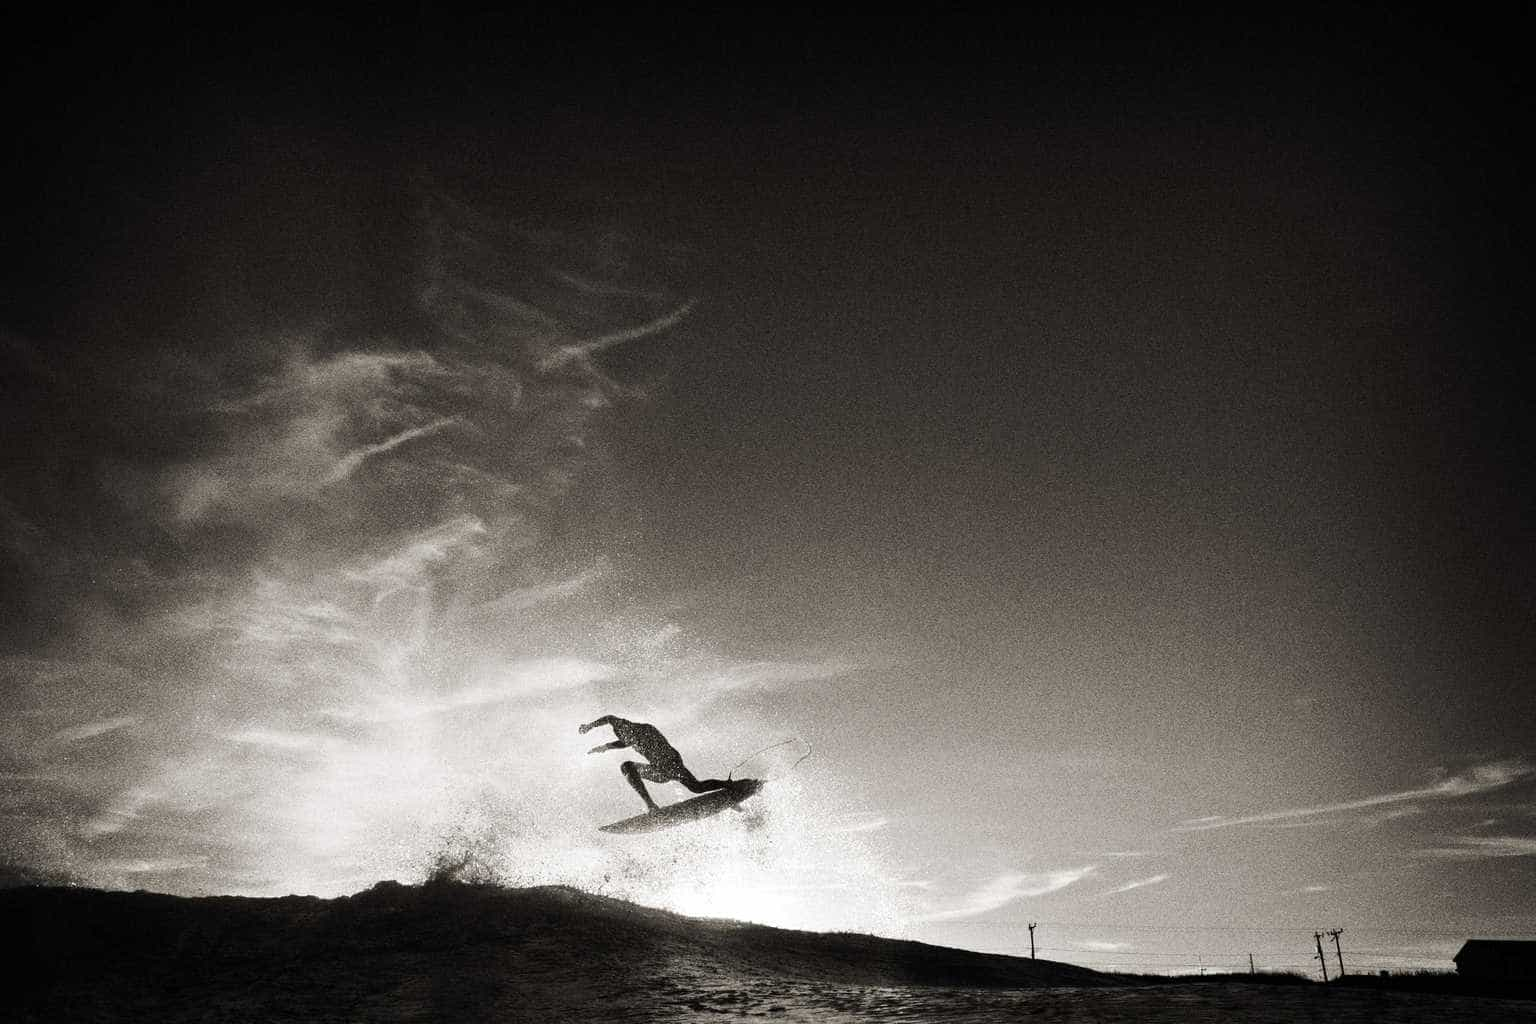 Surfing image from book Legends of the sandbar by surf photographer chris bickford